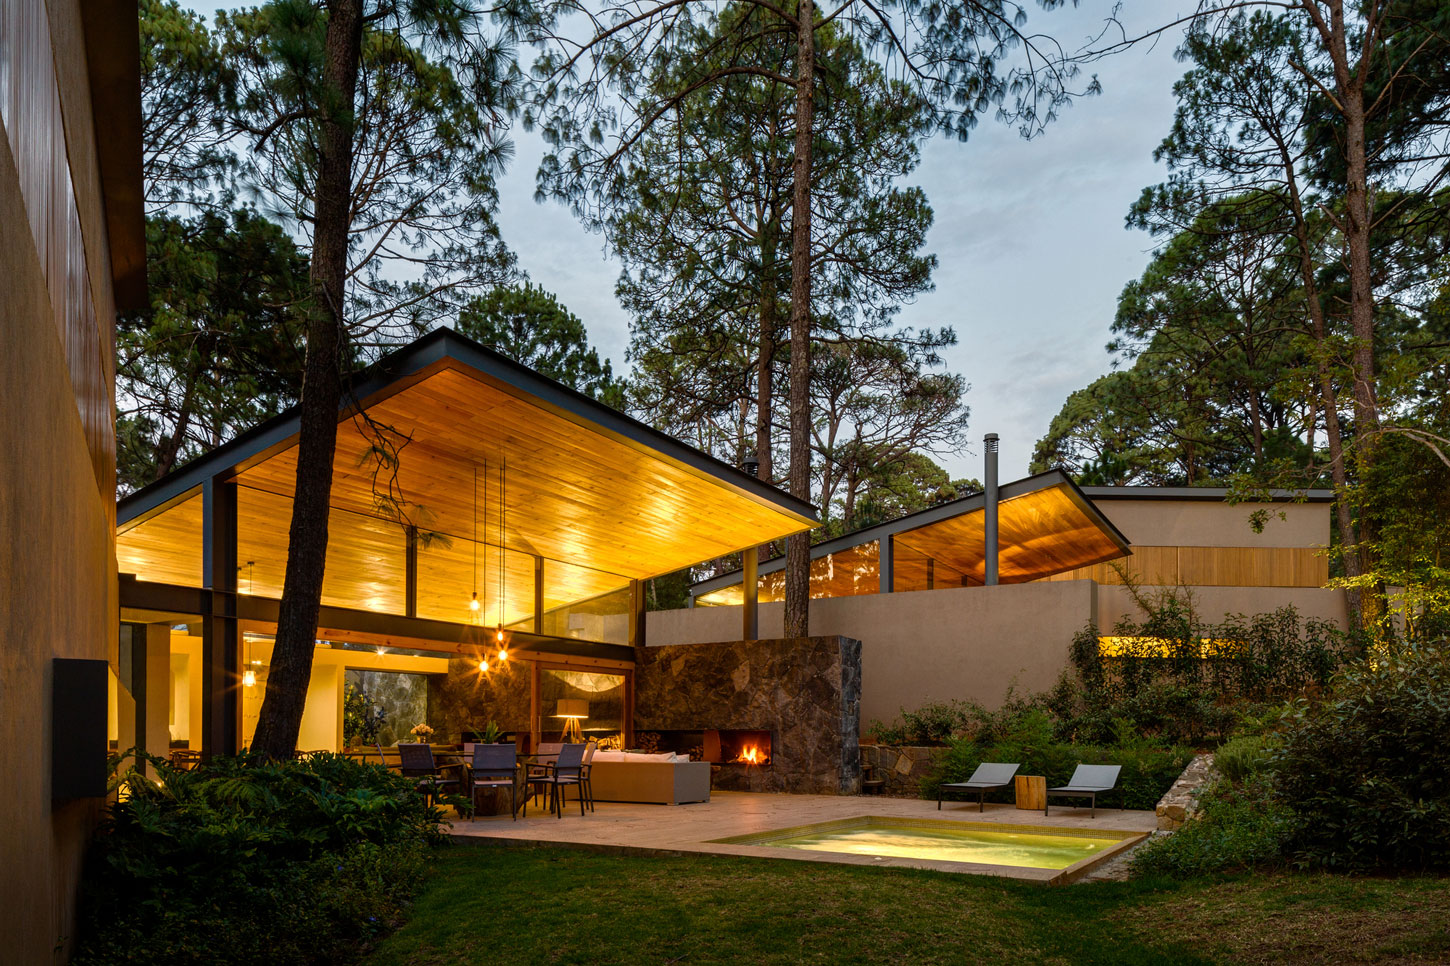 Weber arquitectos design a home surrounded by forests in - Las mejores fachadas de casas ...